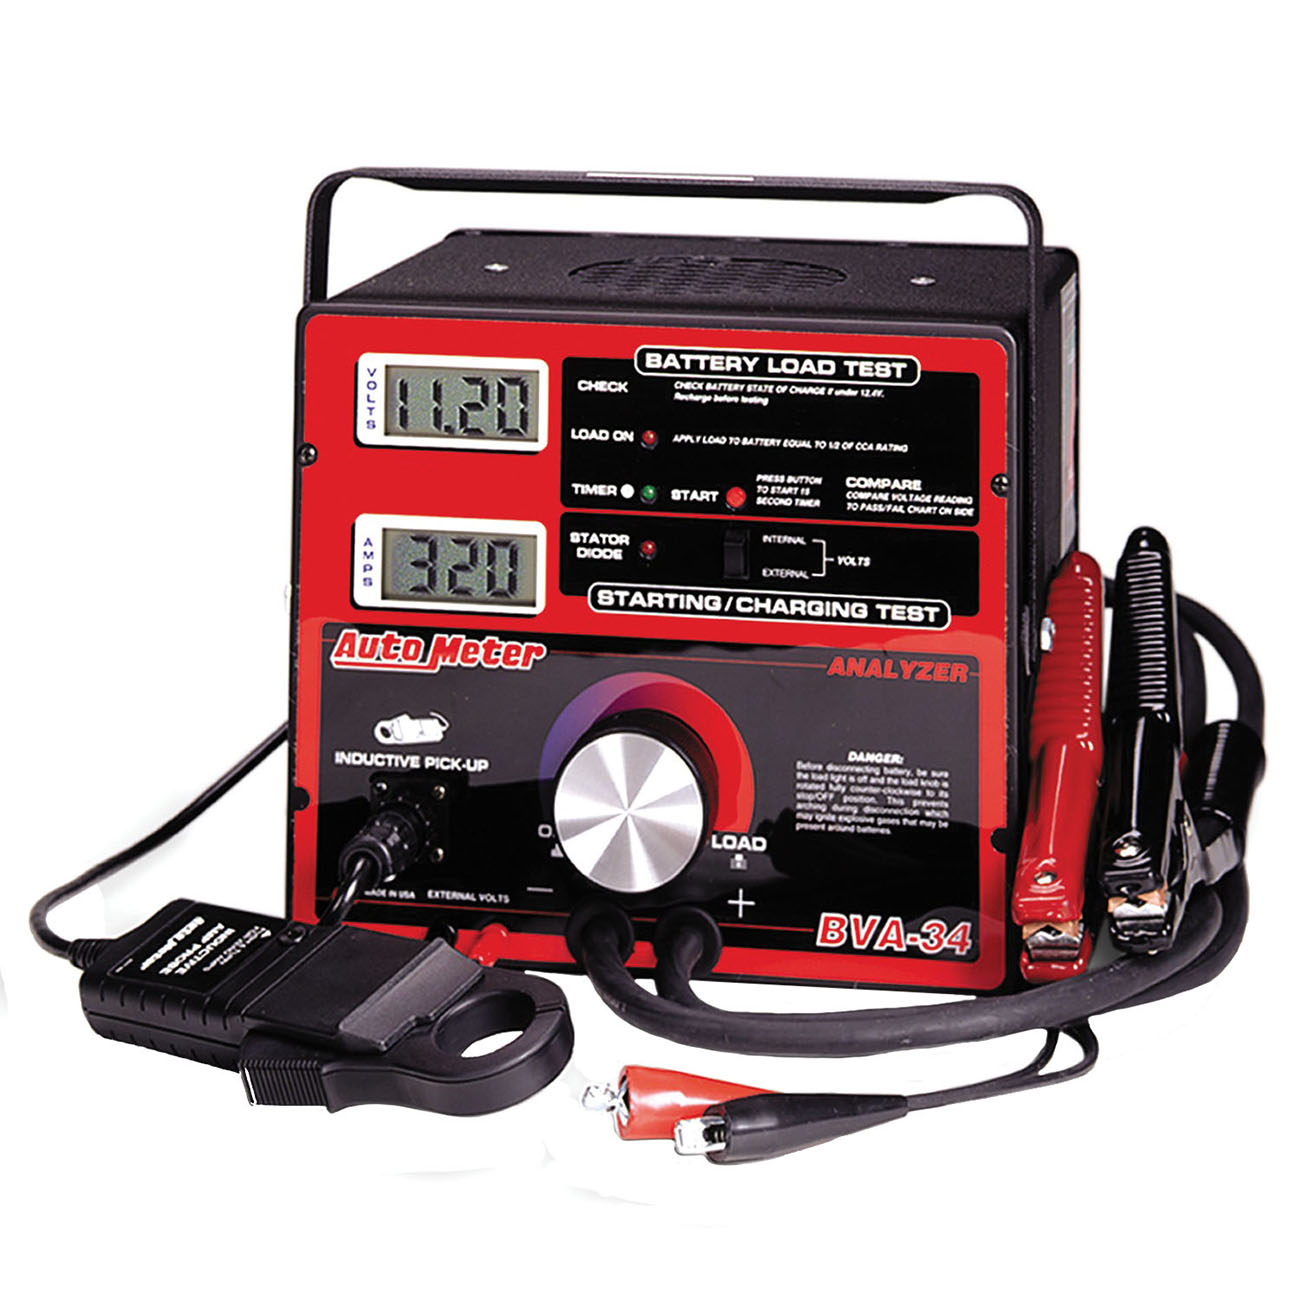 Auto Battery Tester Product : Bva amp variable load battery electrical system